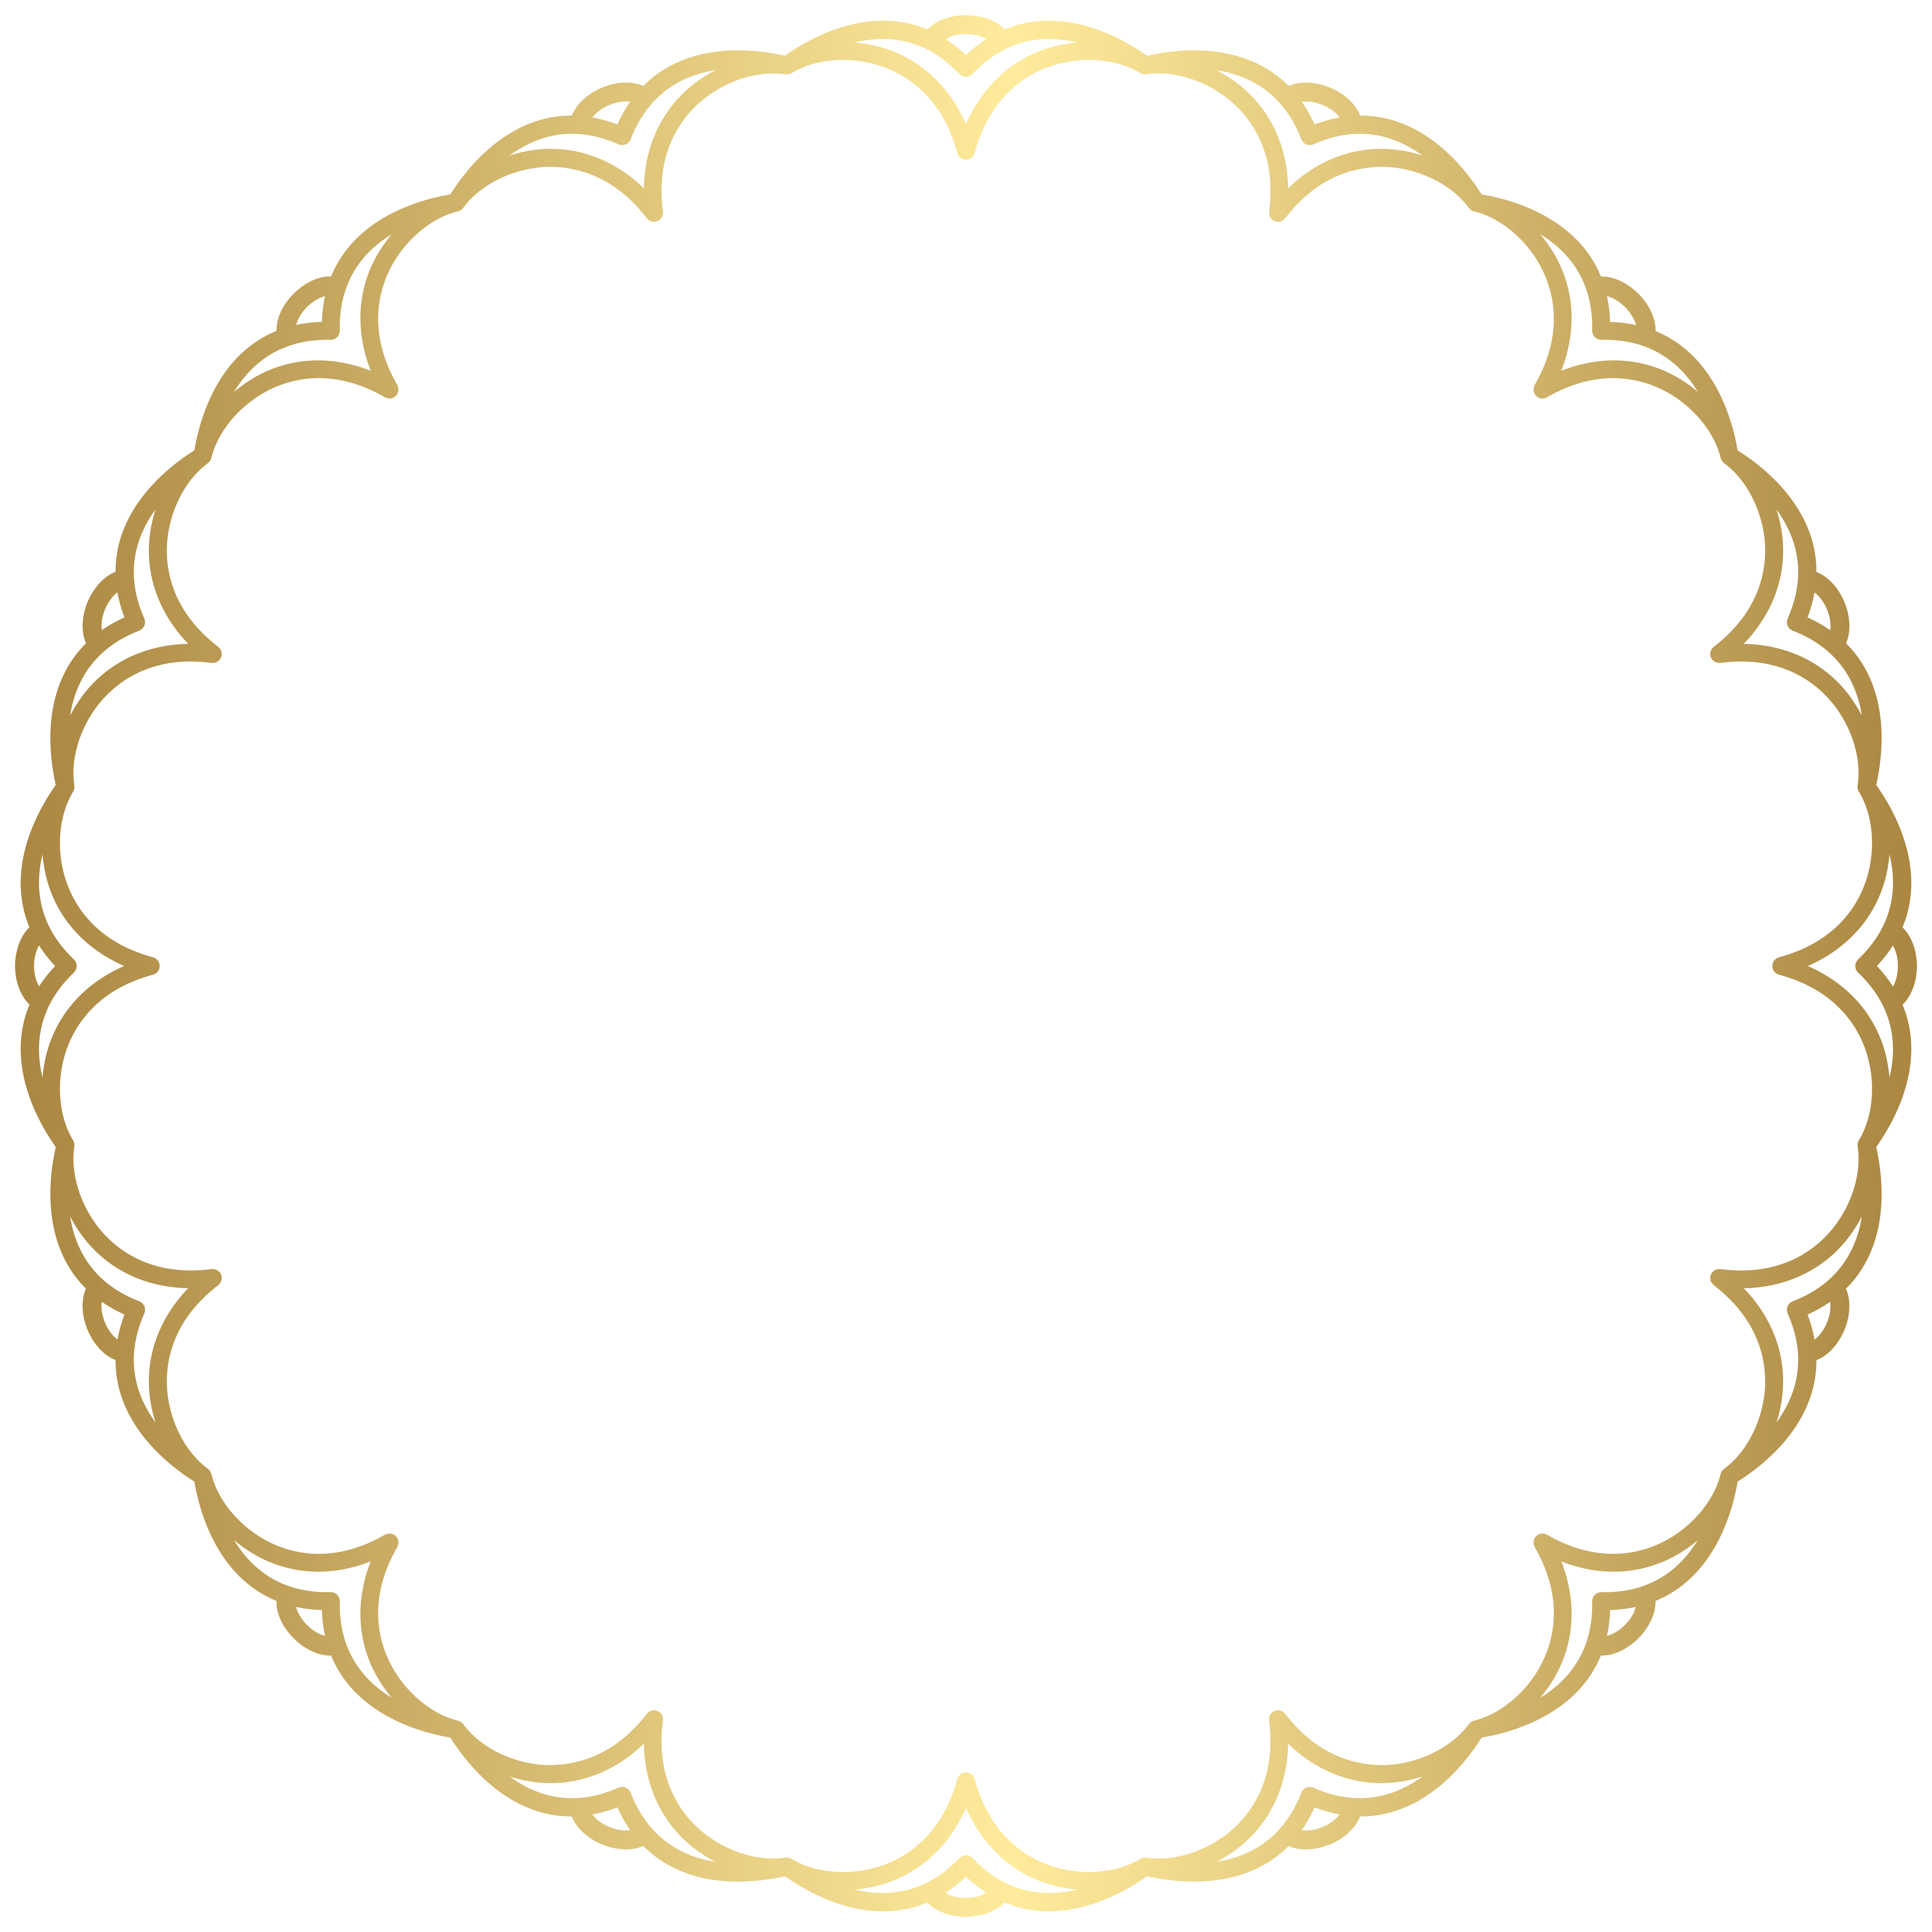 Border Frame Round PNG Clipart.